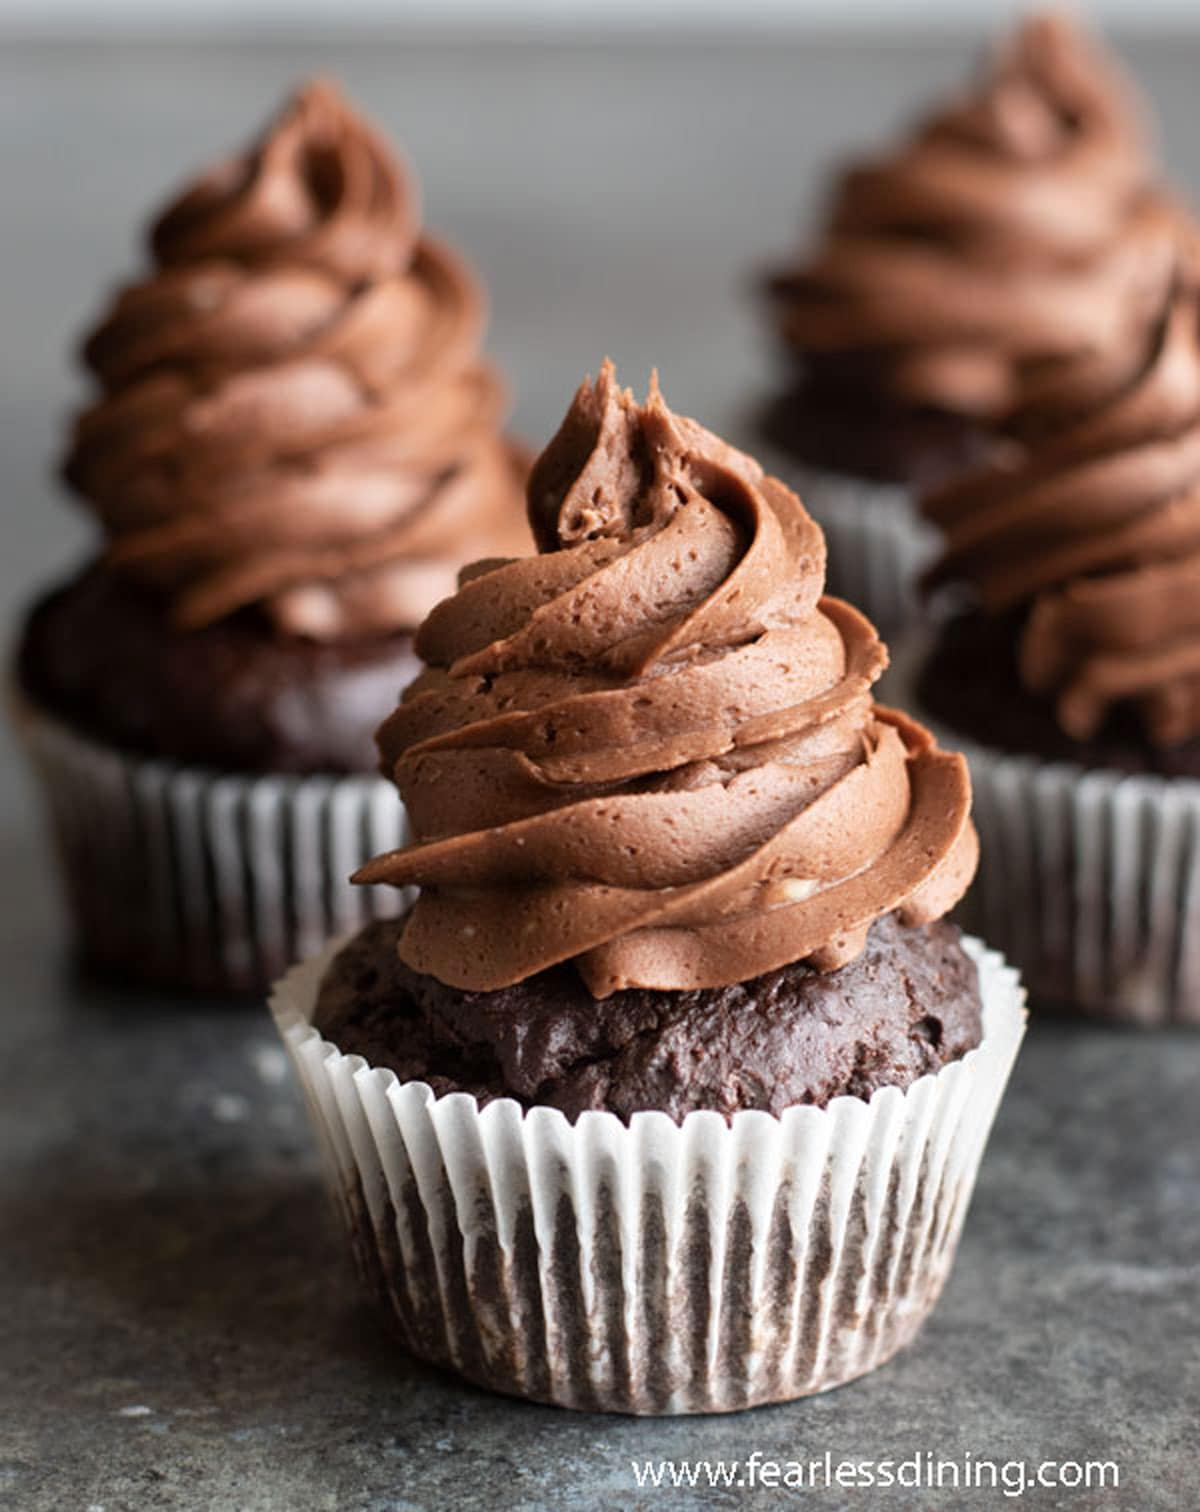 rows of chocolate cupcakes on the counter